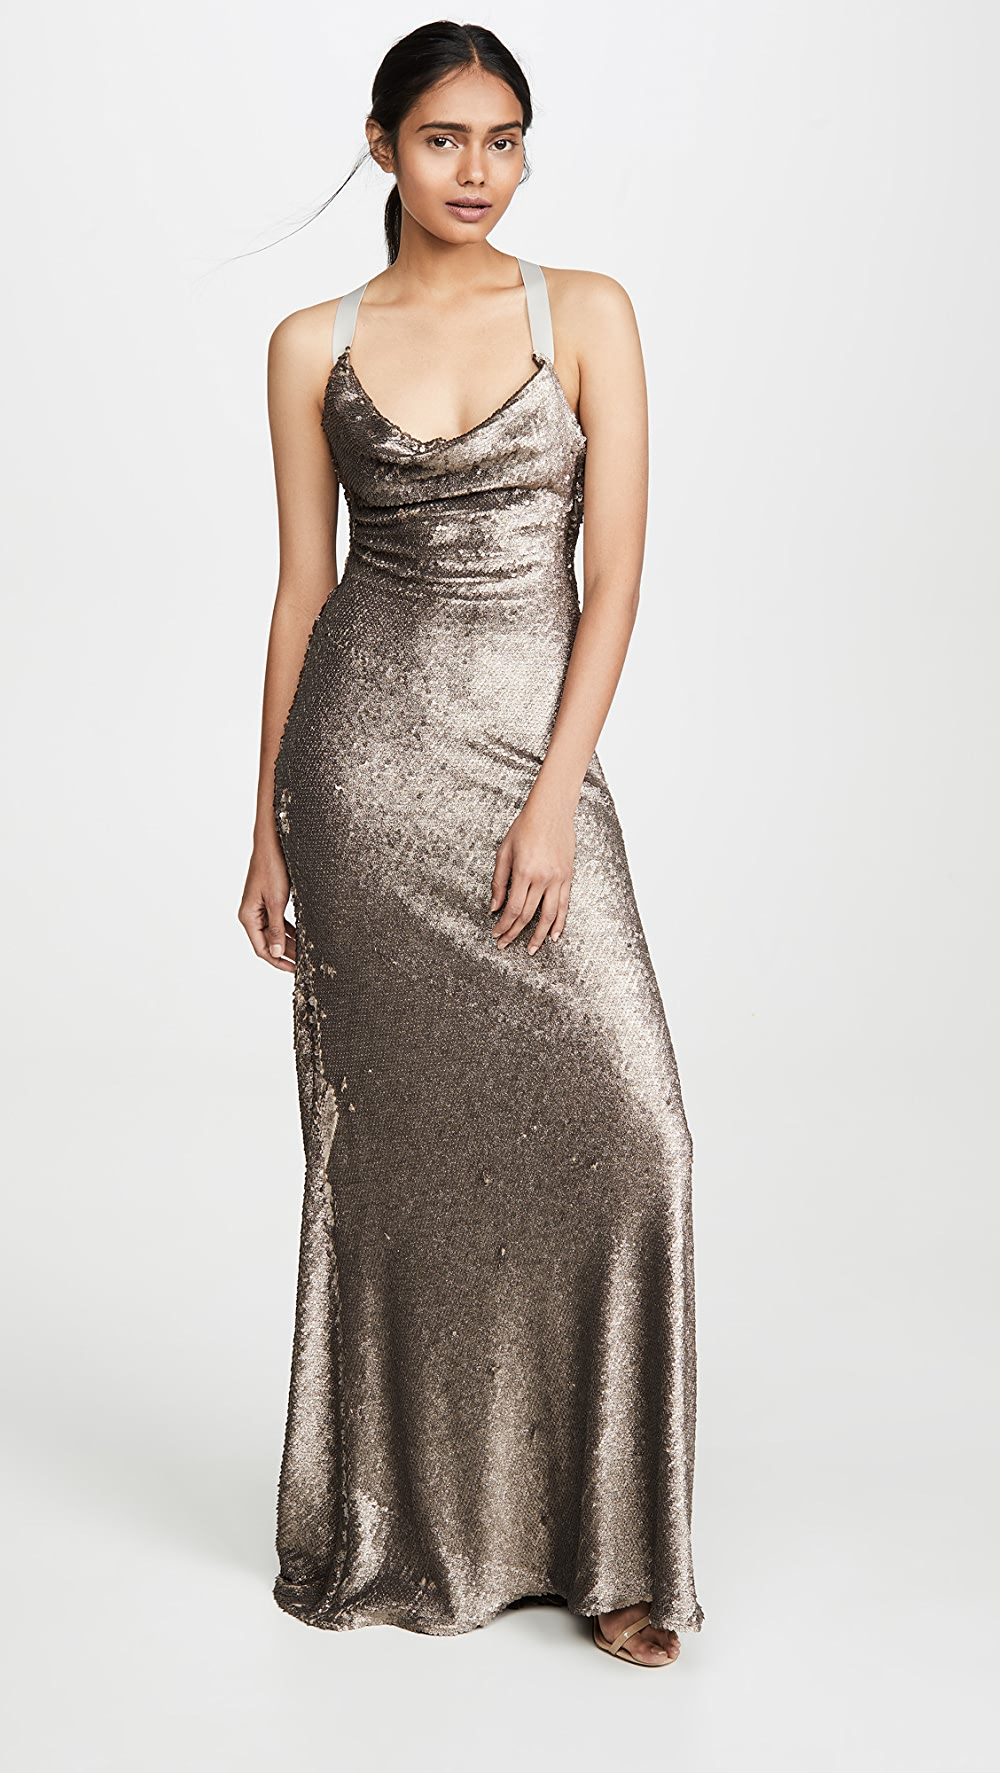 100% Quality Maria Lucia Hohan - Laure Sequin Dress Promoting Health And Curing Diseases